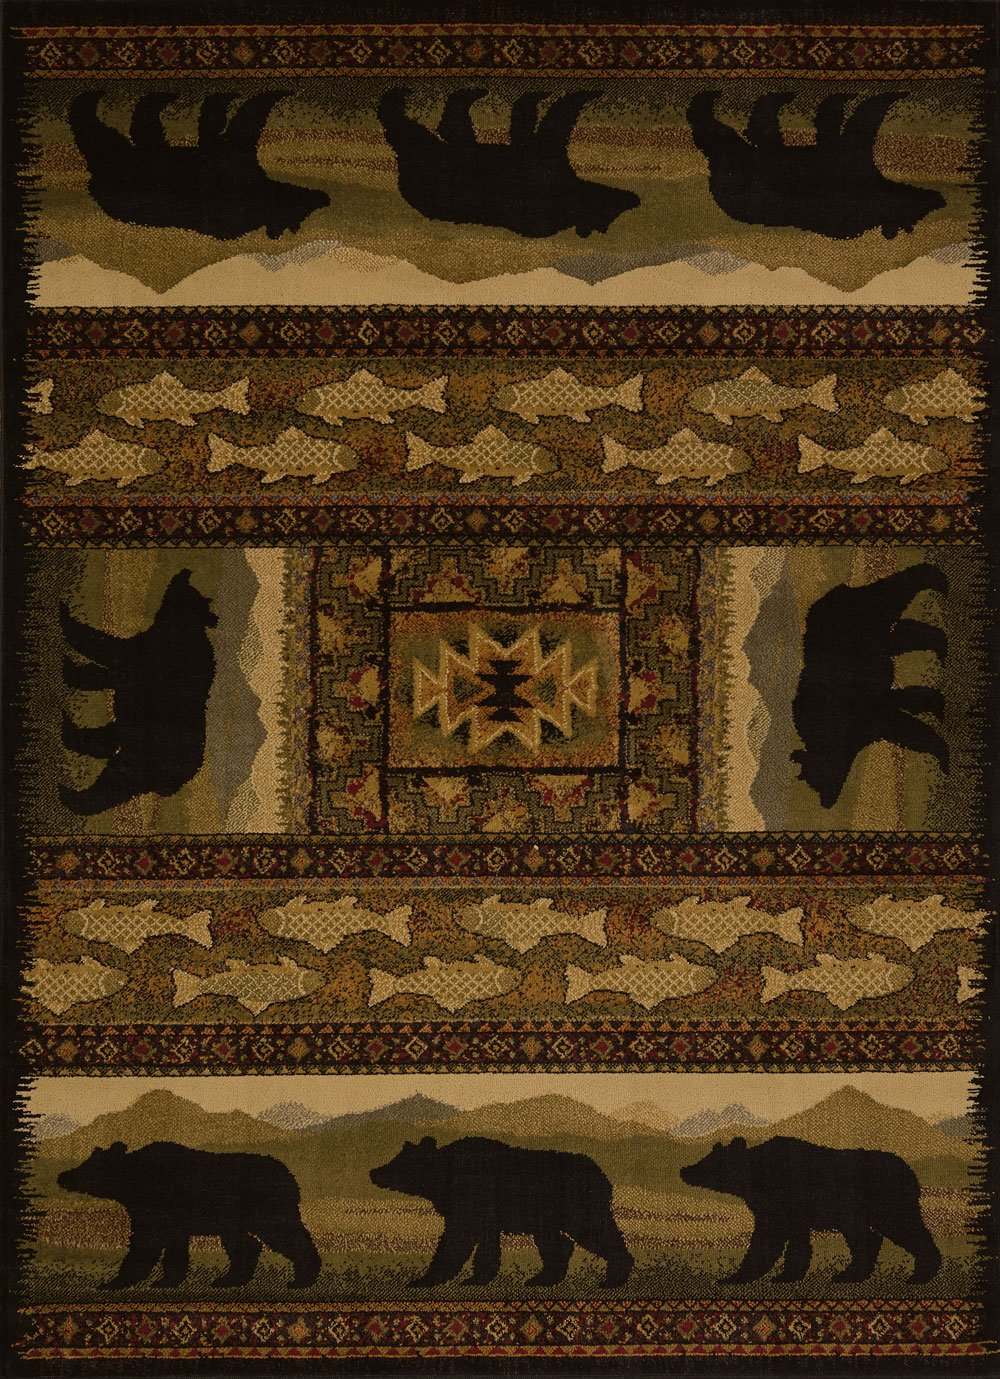 amazoncom united weavers of america affinity collection black bears rug 53 by 106feet brown kitchen u0026 dining